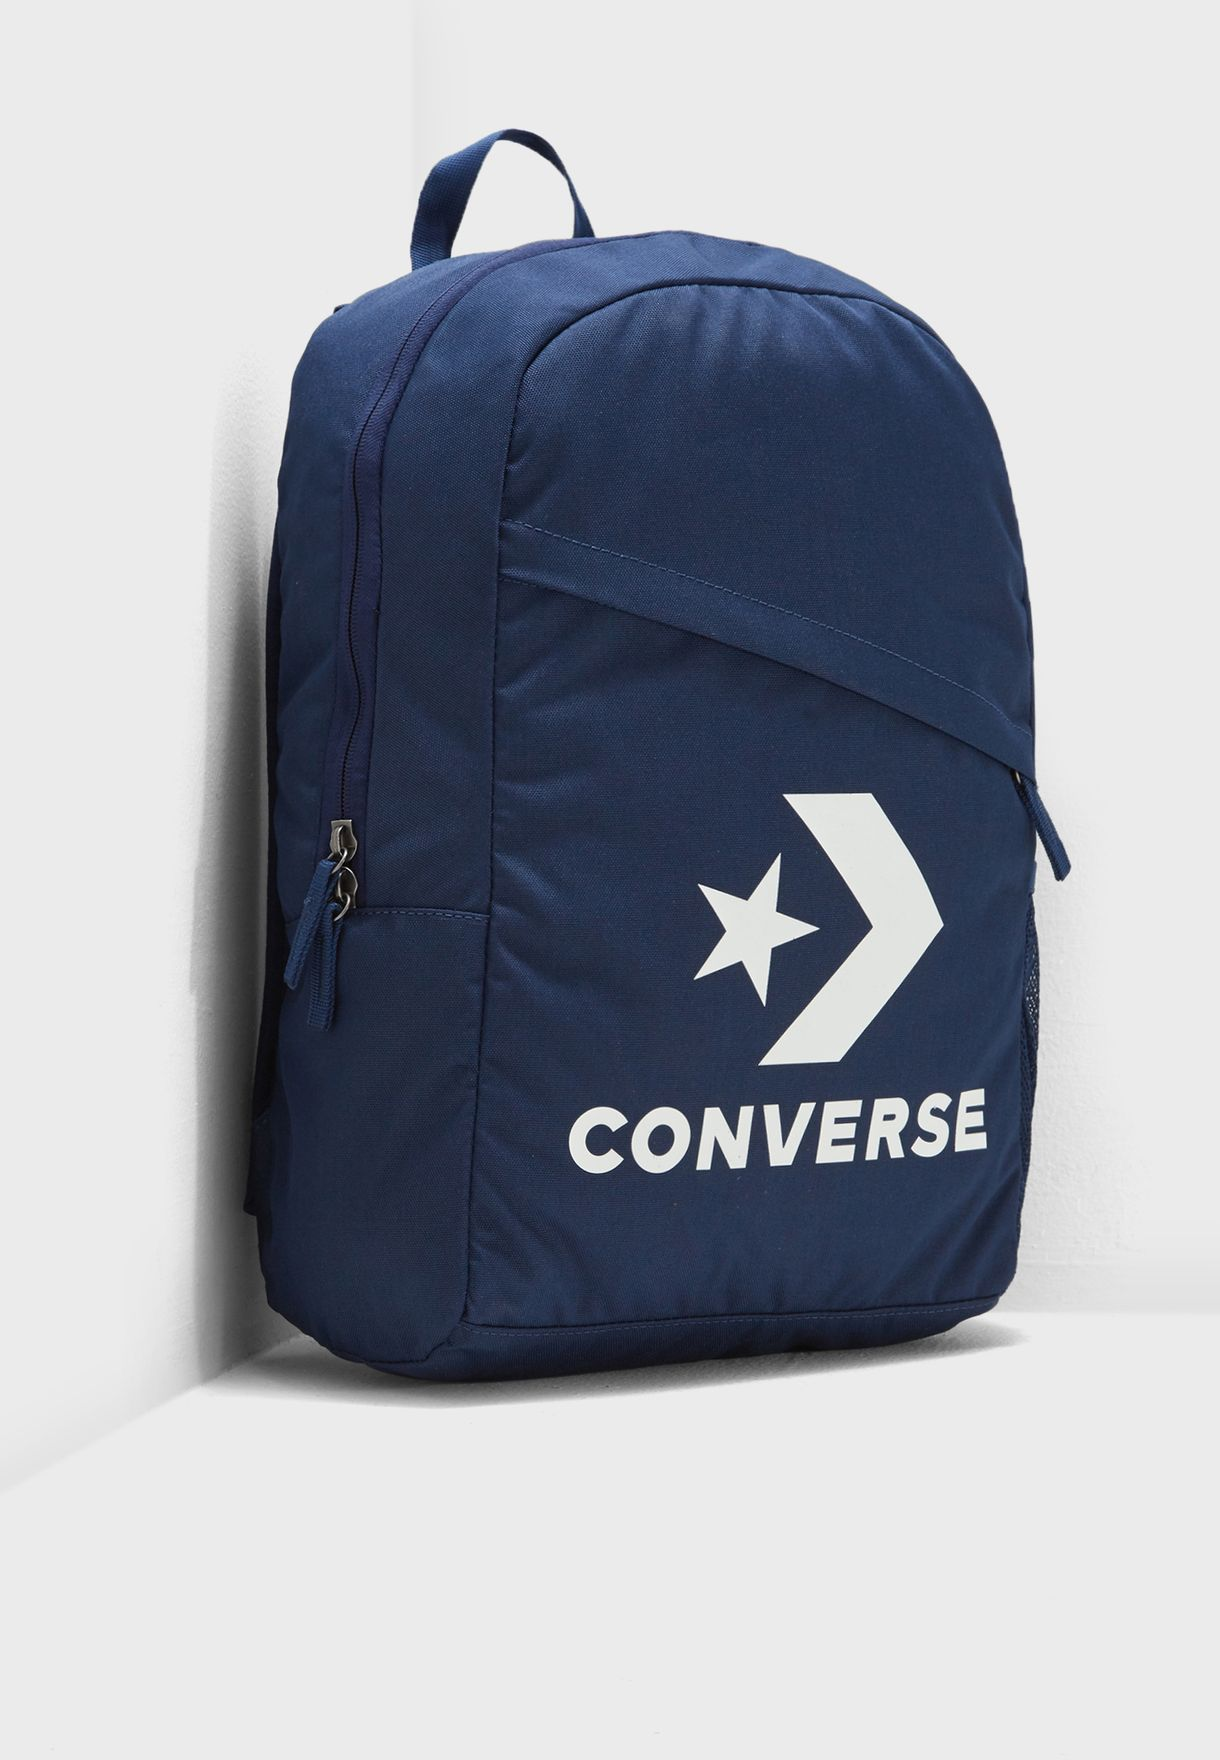 bdb4abca82b4 Shop Converse navy Speed Backpack 10008091-A02 for Men in UAE ...